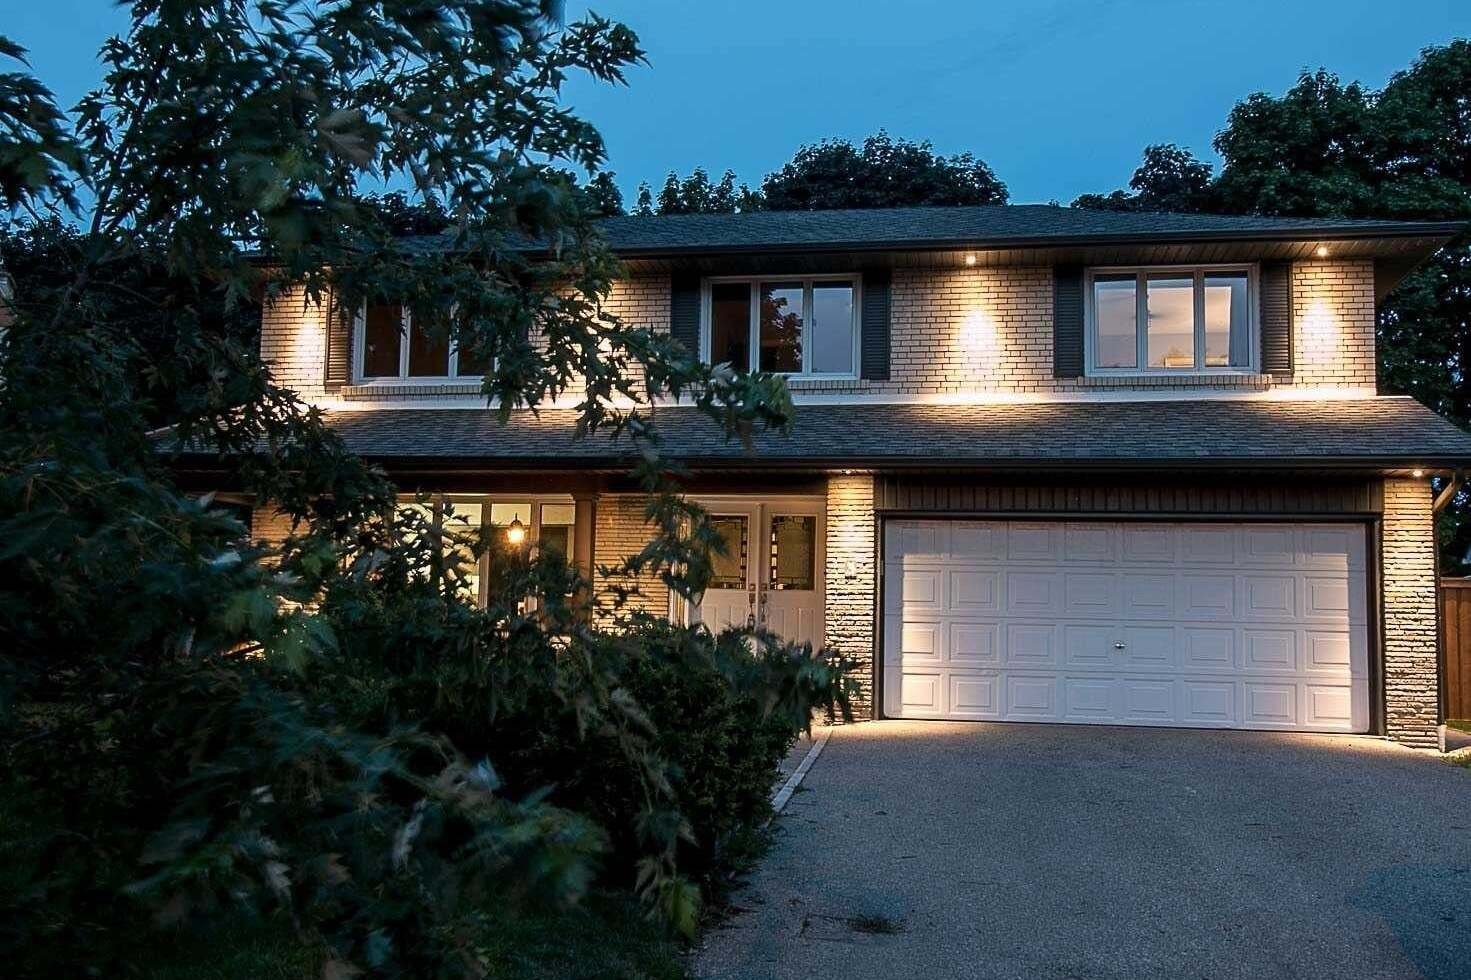 House for sale at 3 Streatham Pl Toronto Ontario - MLS: W4861337